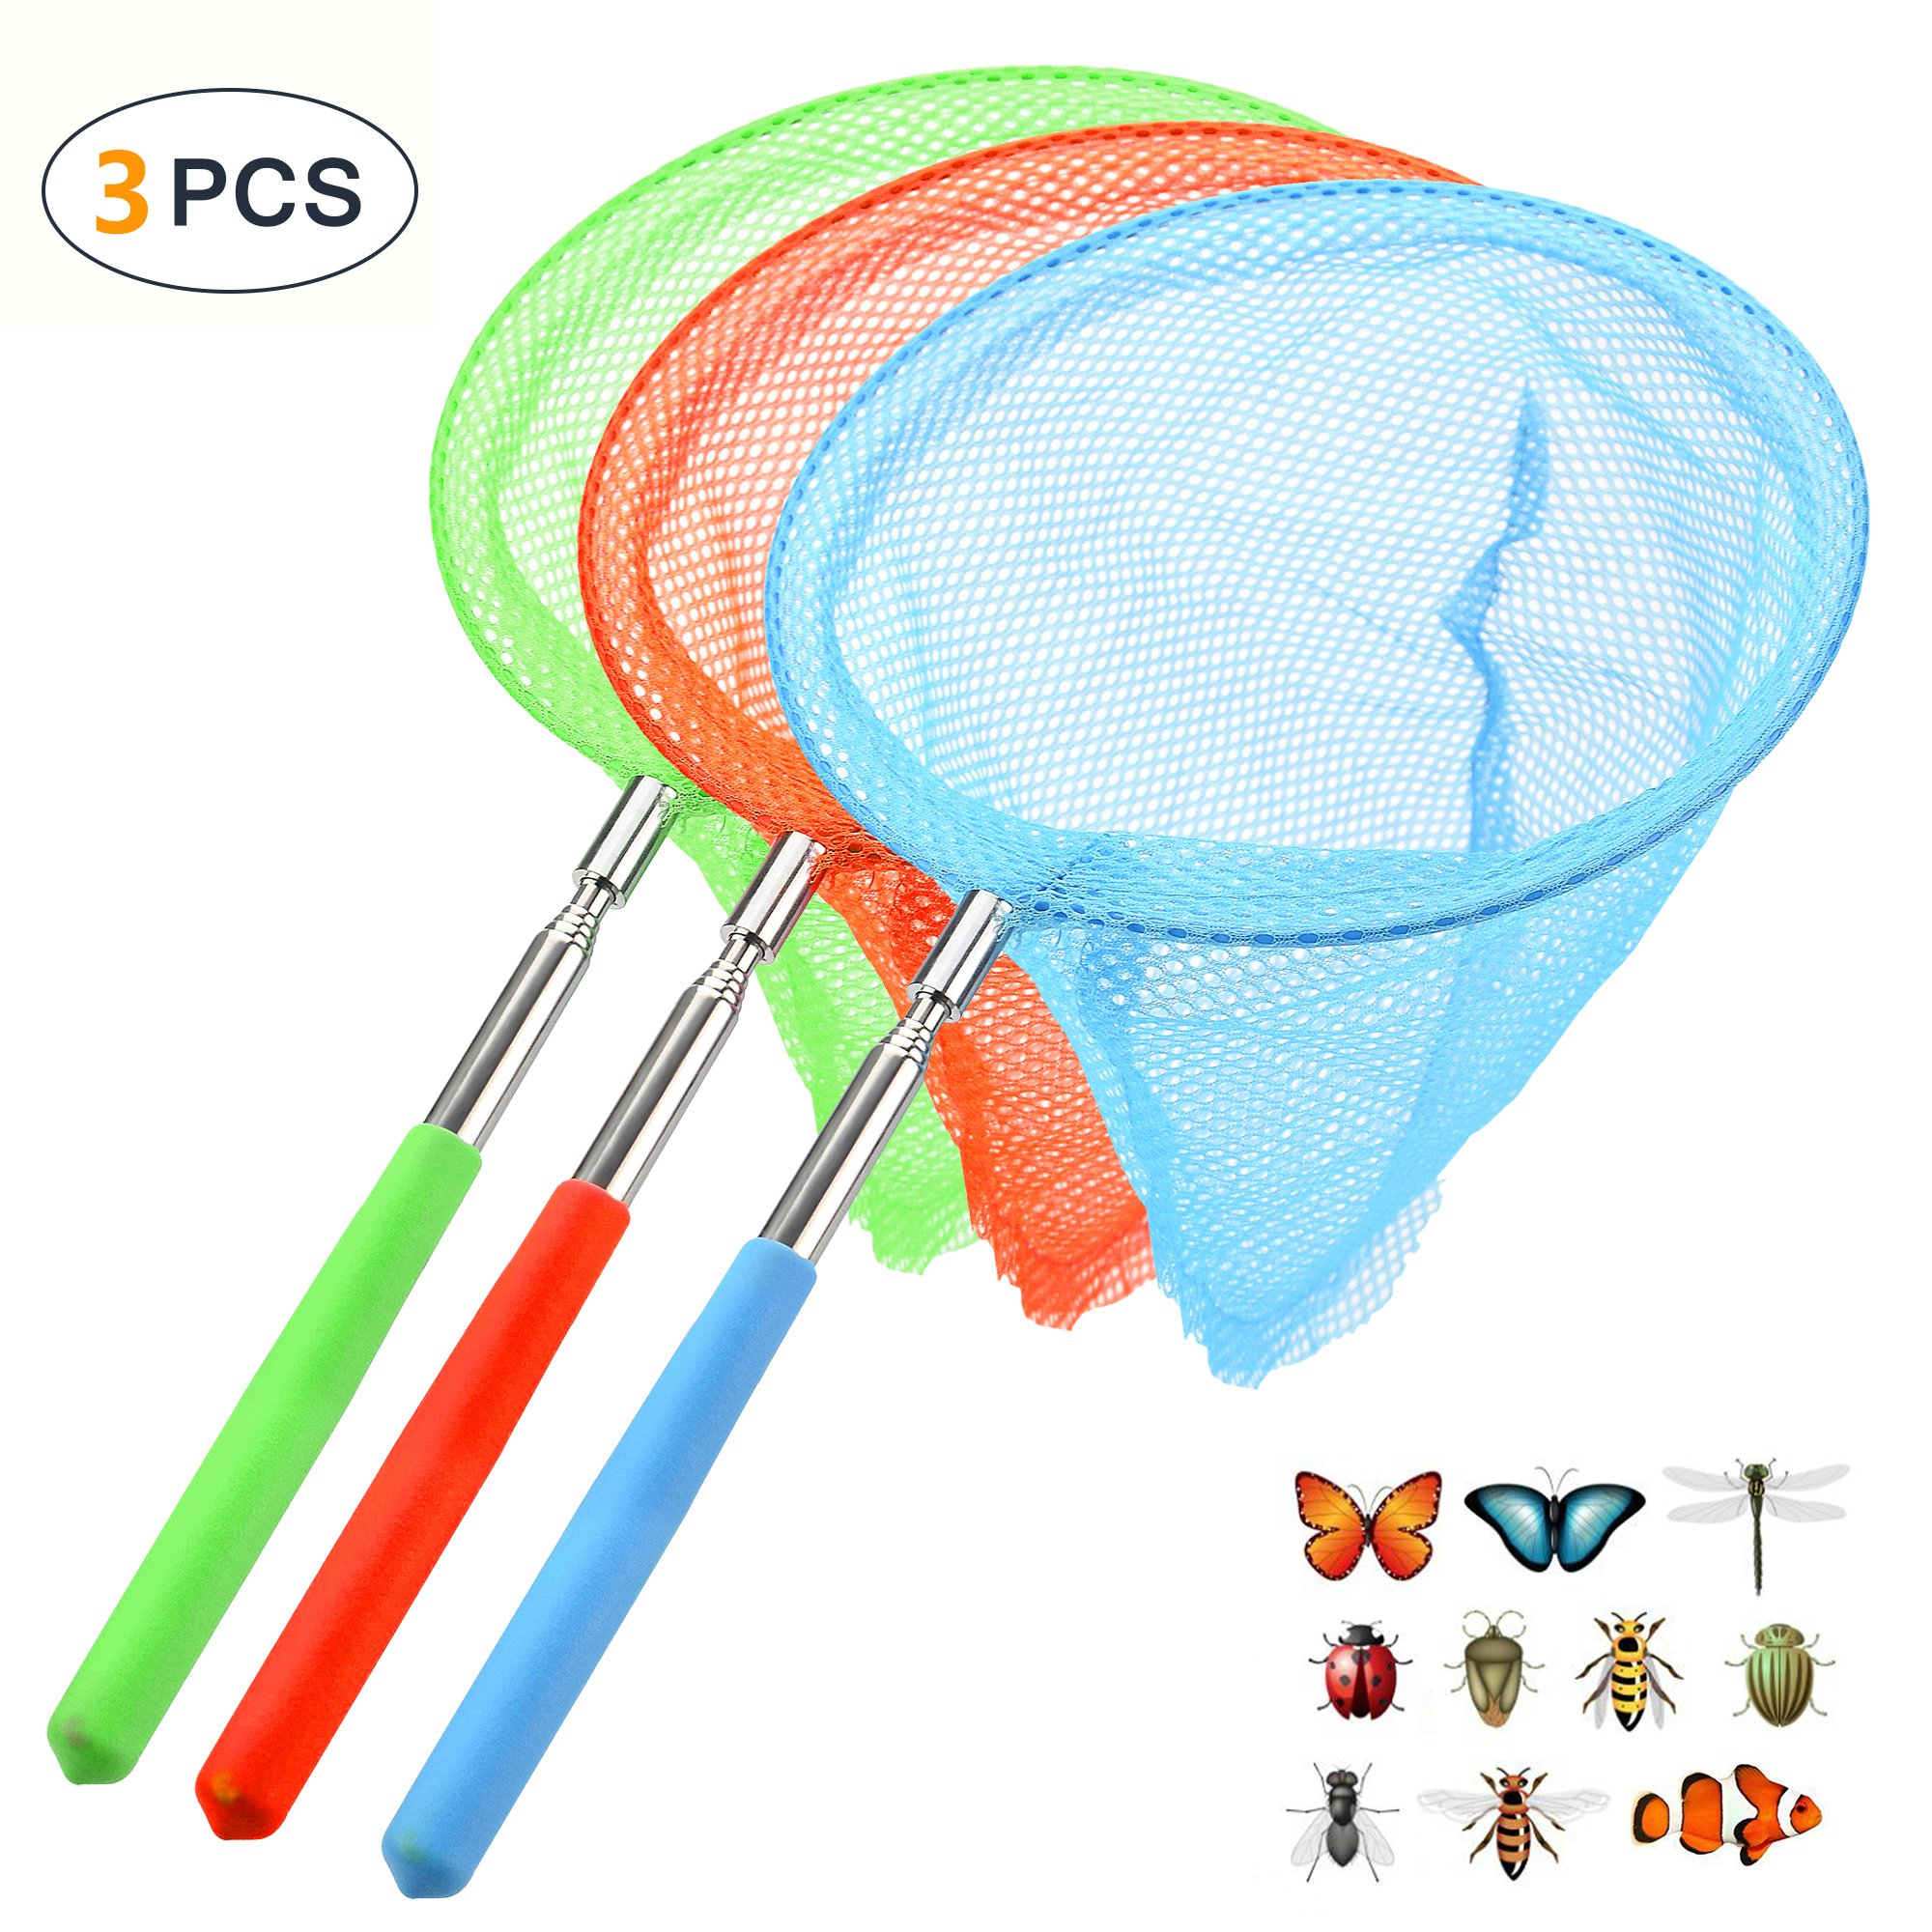 PiscatorZone Children Toy Net for Catching Butterflies Insects Bugs and Small fish, Kids Play Net with Extendable and Anti Slip Grip, Perfect Festival Gift-PACK OF 3